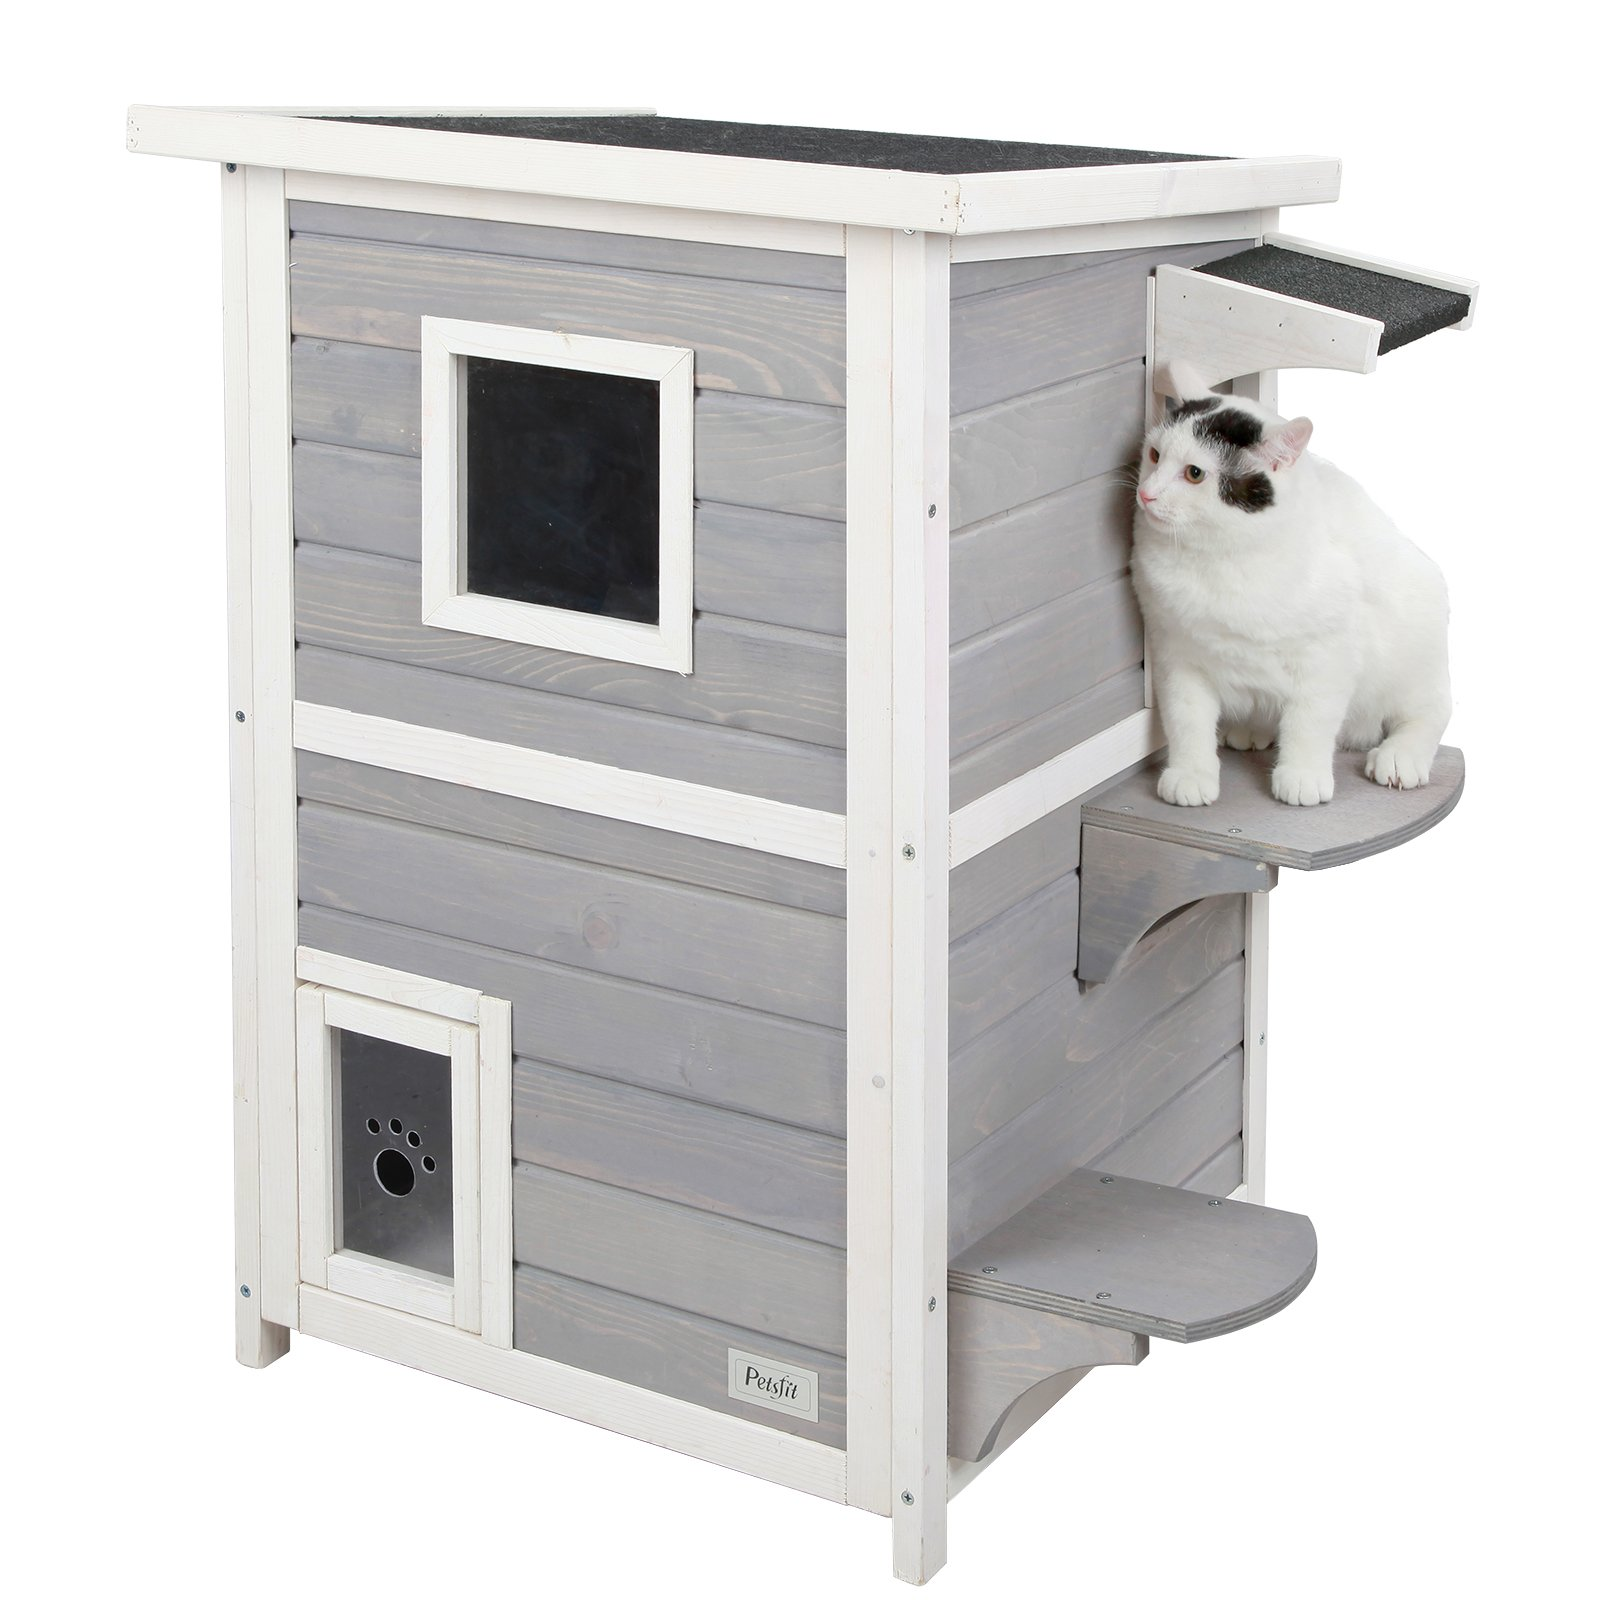 Petsfit 2-Story Weatherproof Outdoor Kitty Cat House/Condo/Shelter with Escape Door by Petsfit